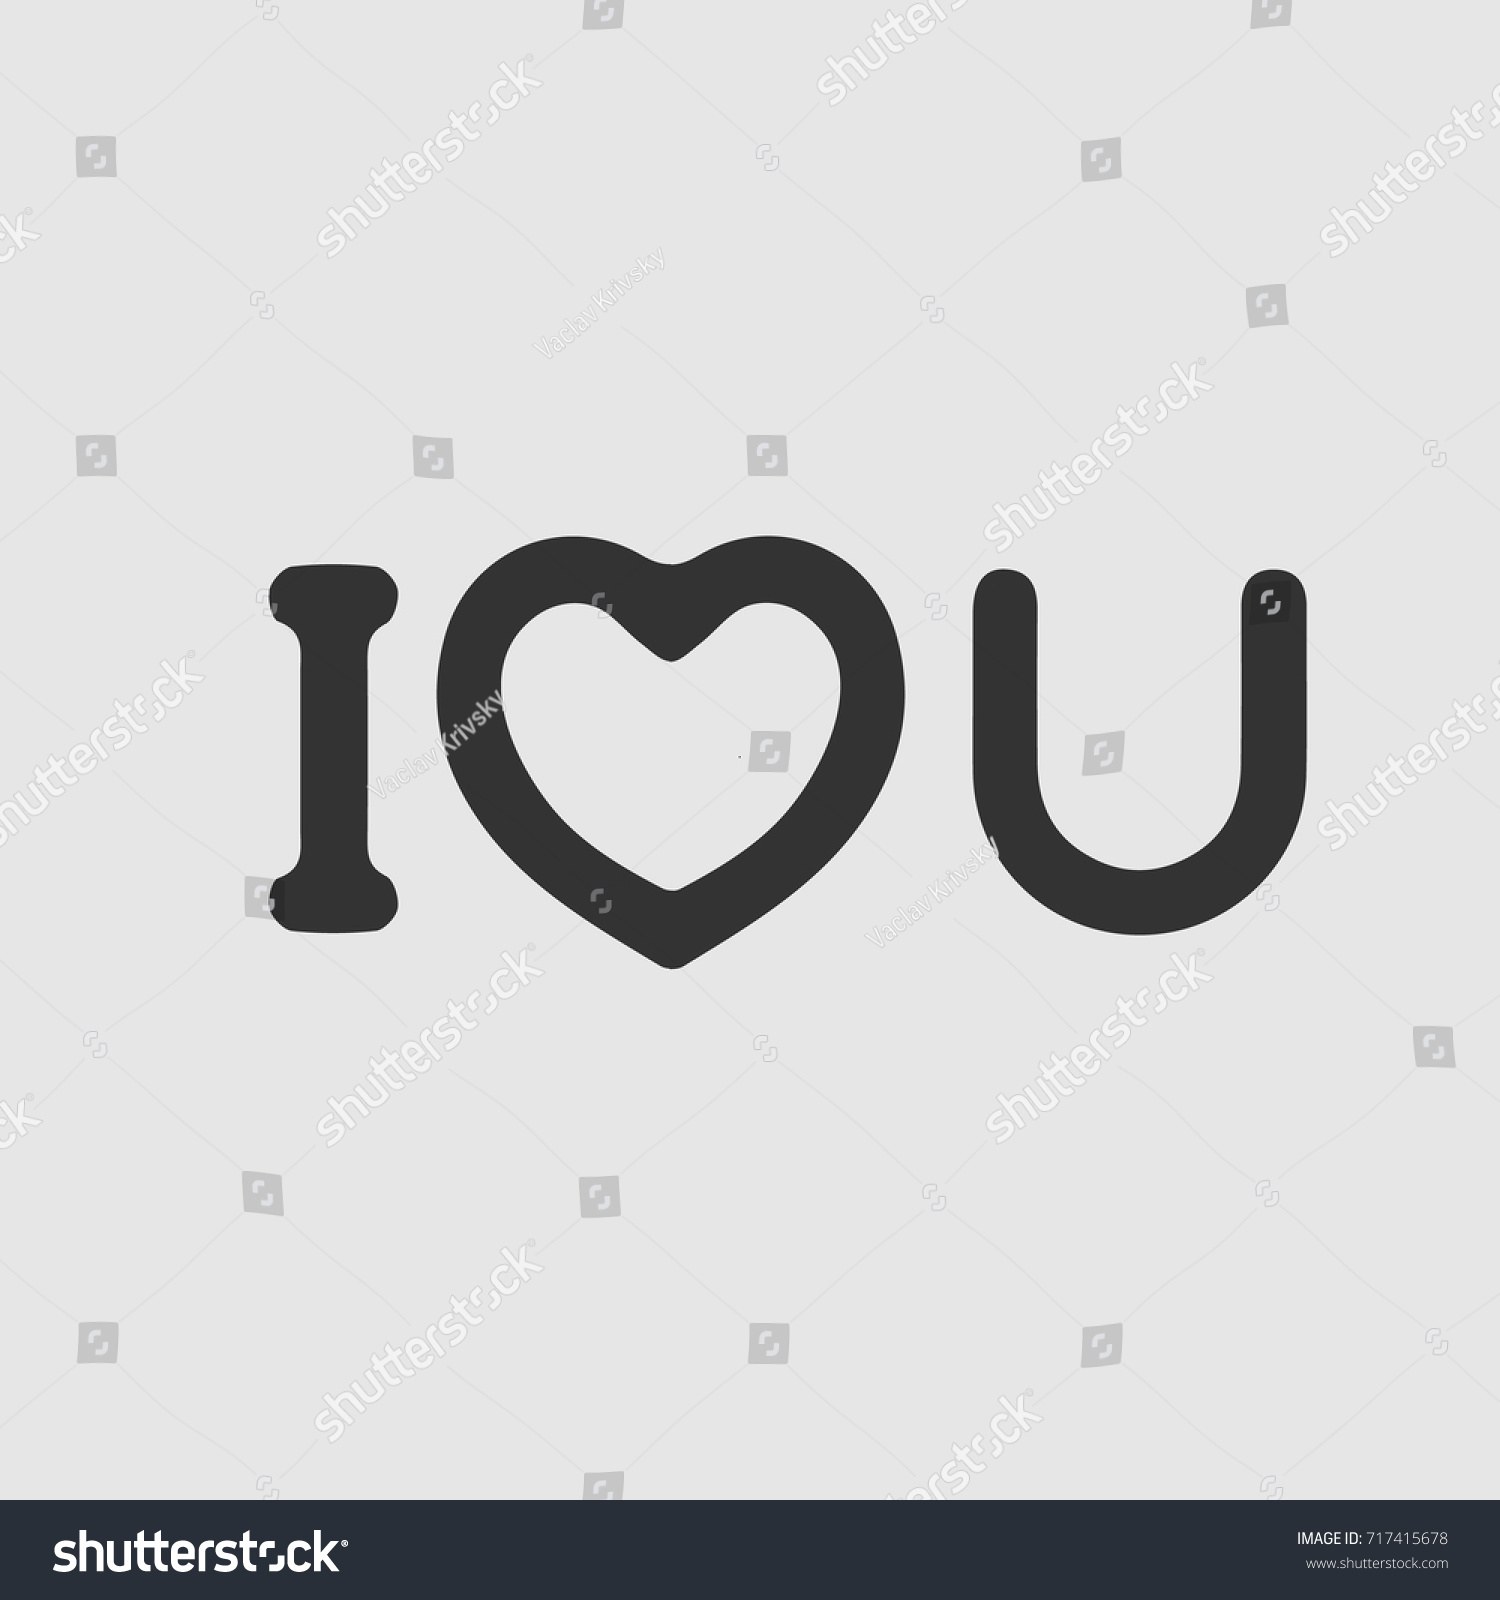 Love You Text Heart Symbol Valentine Stock Vector Royalty Free